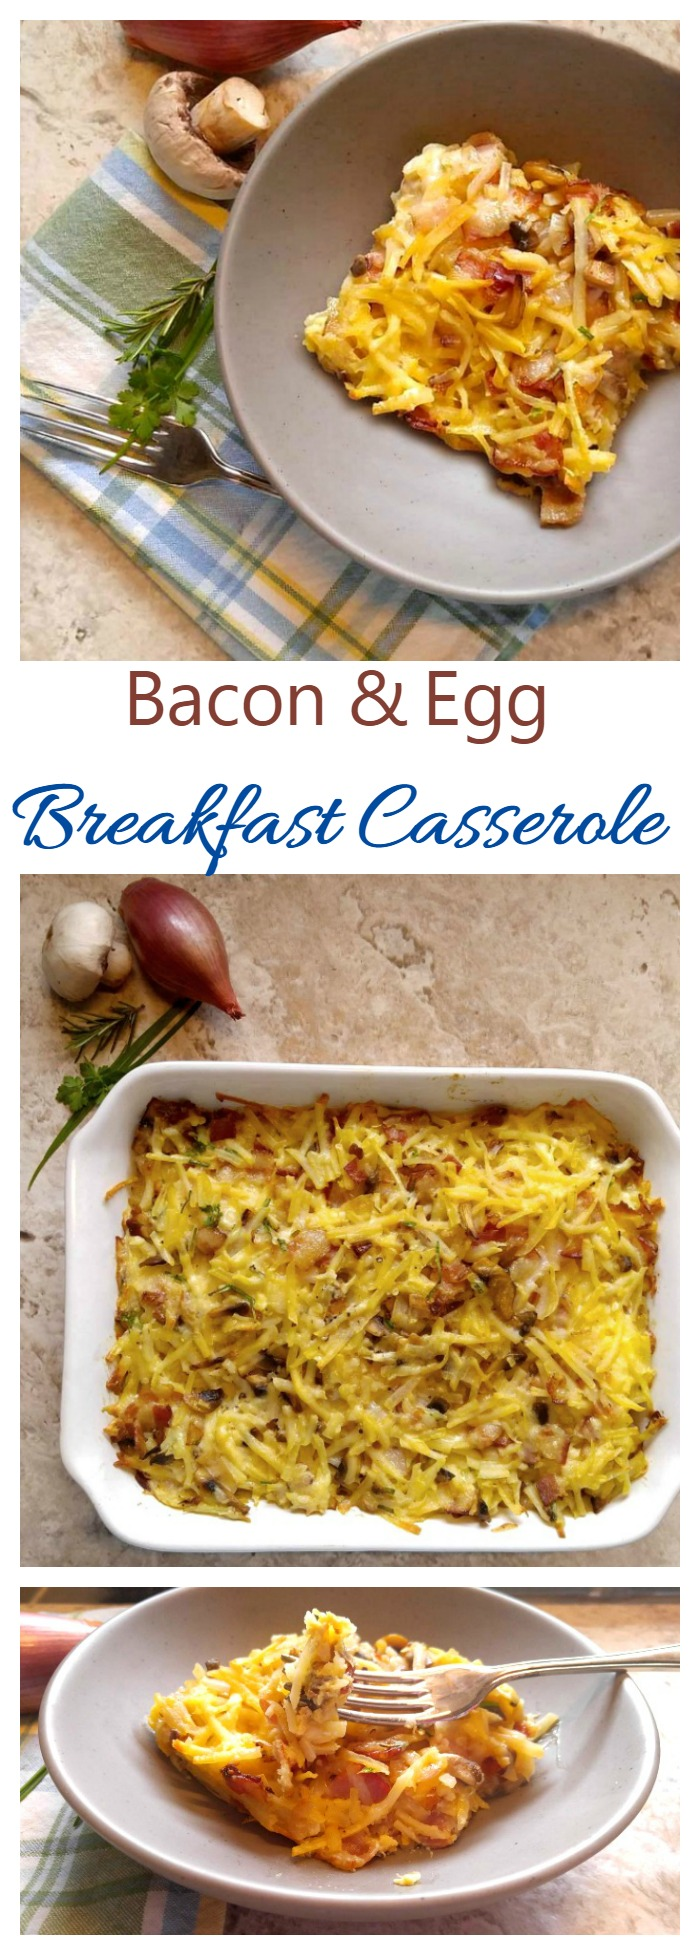 This loaded Bacon & Egg Breakfast Casserole is a delicious and hearty start to your day. The casserole is easy to make in about 30 minutes.